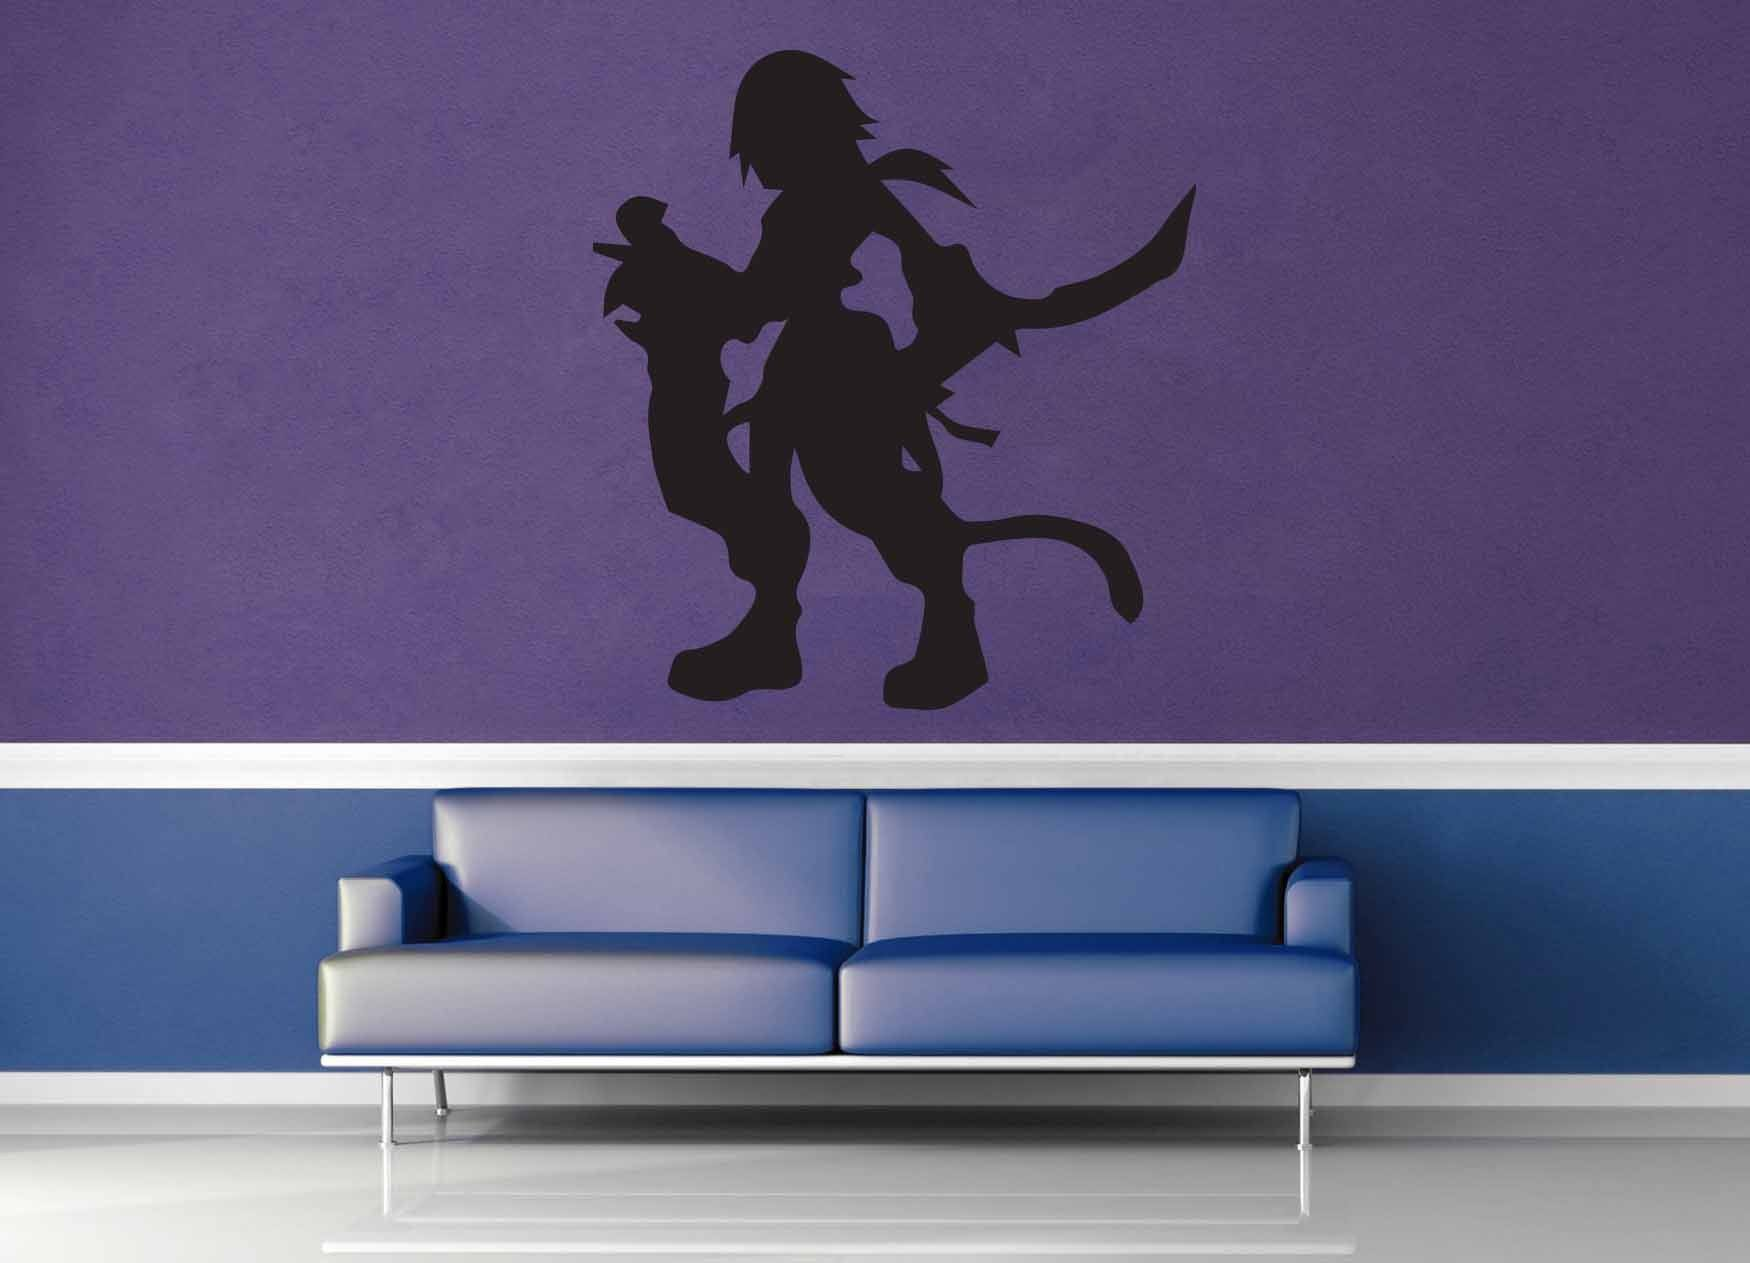 Zidane Silhouette - Final Fantasy 9 - Wall Decal